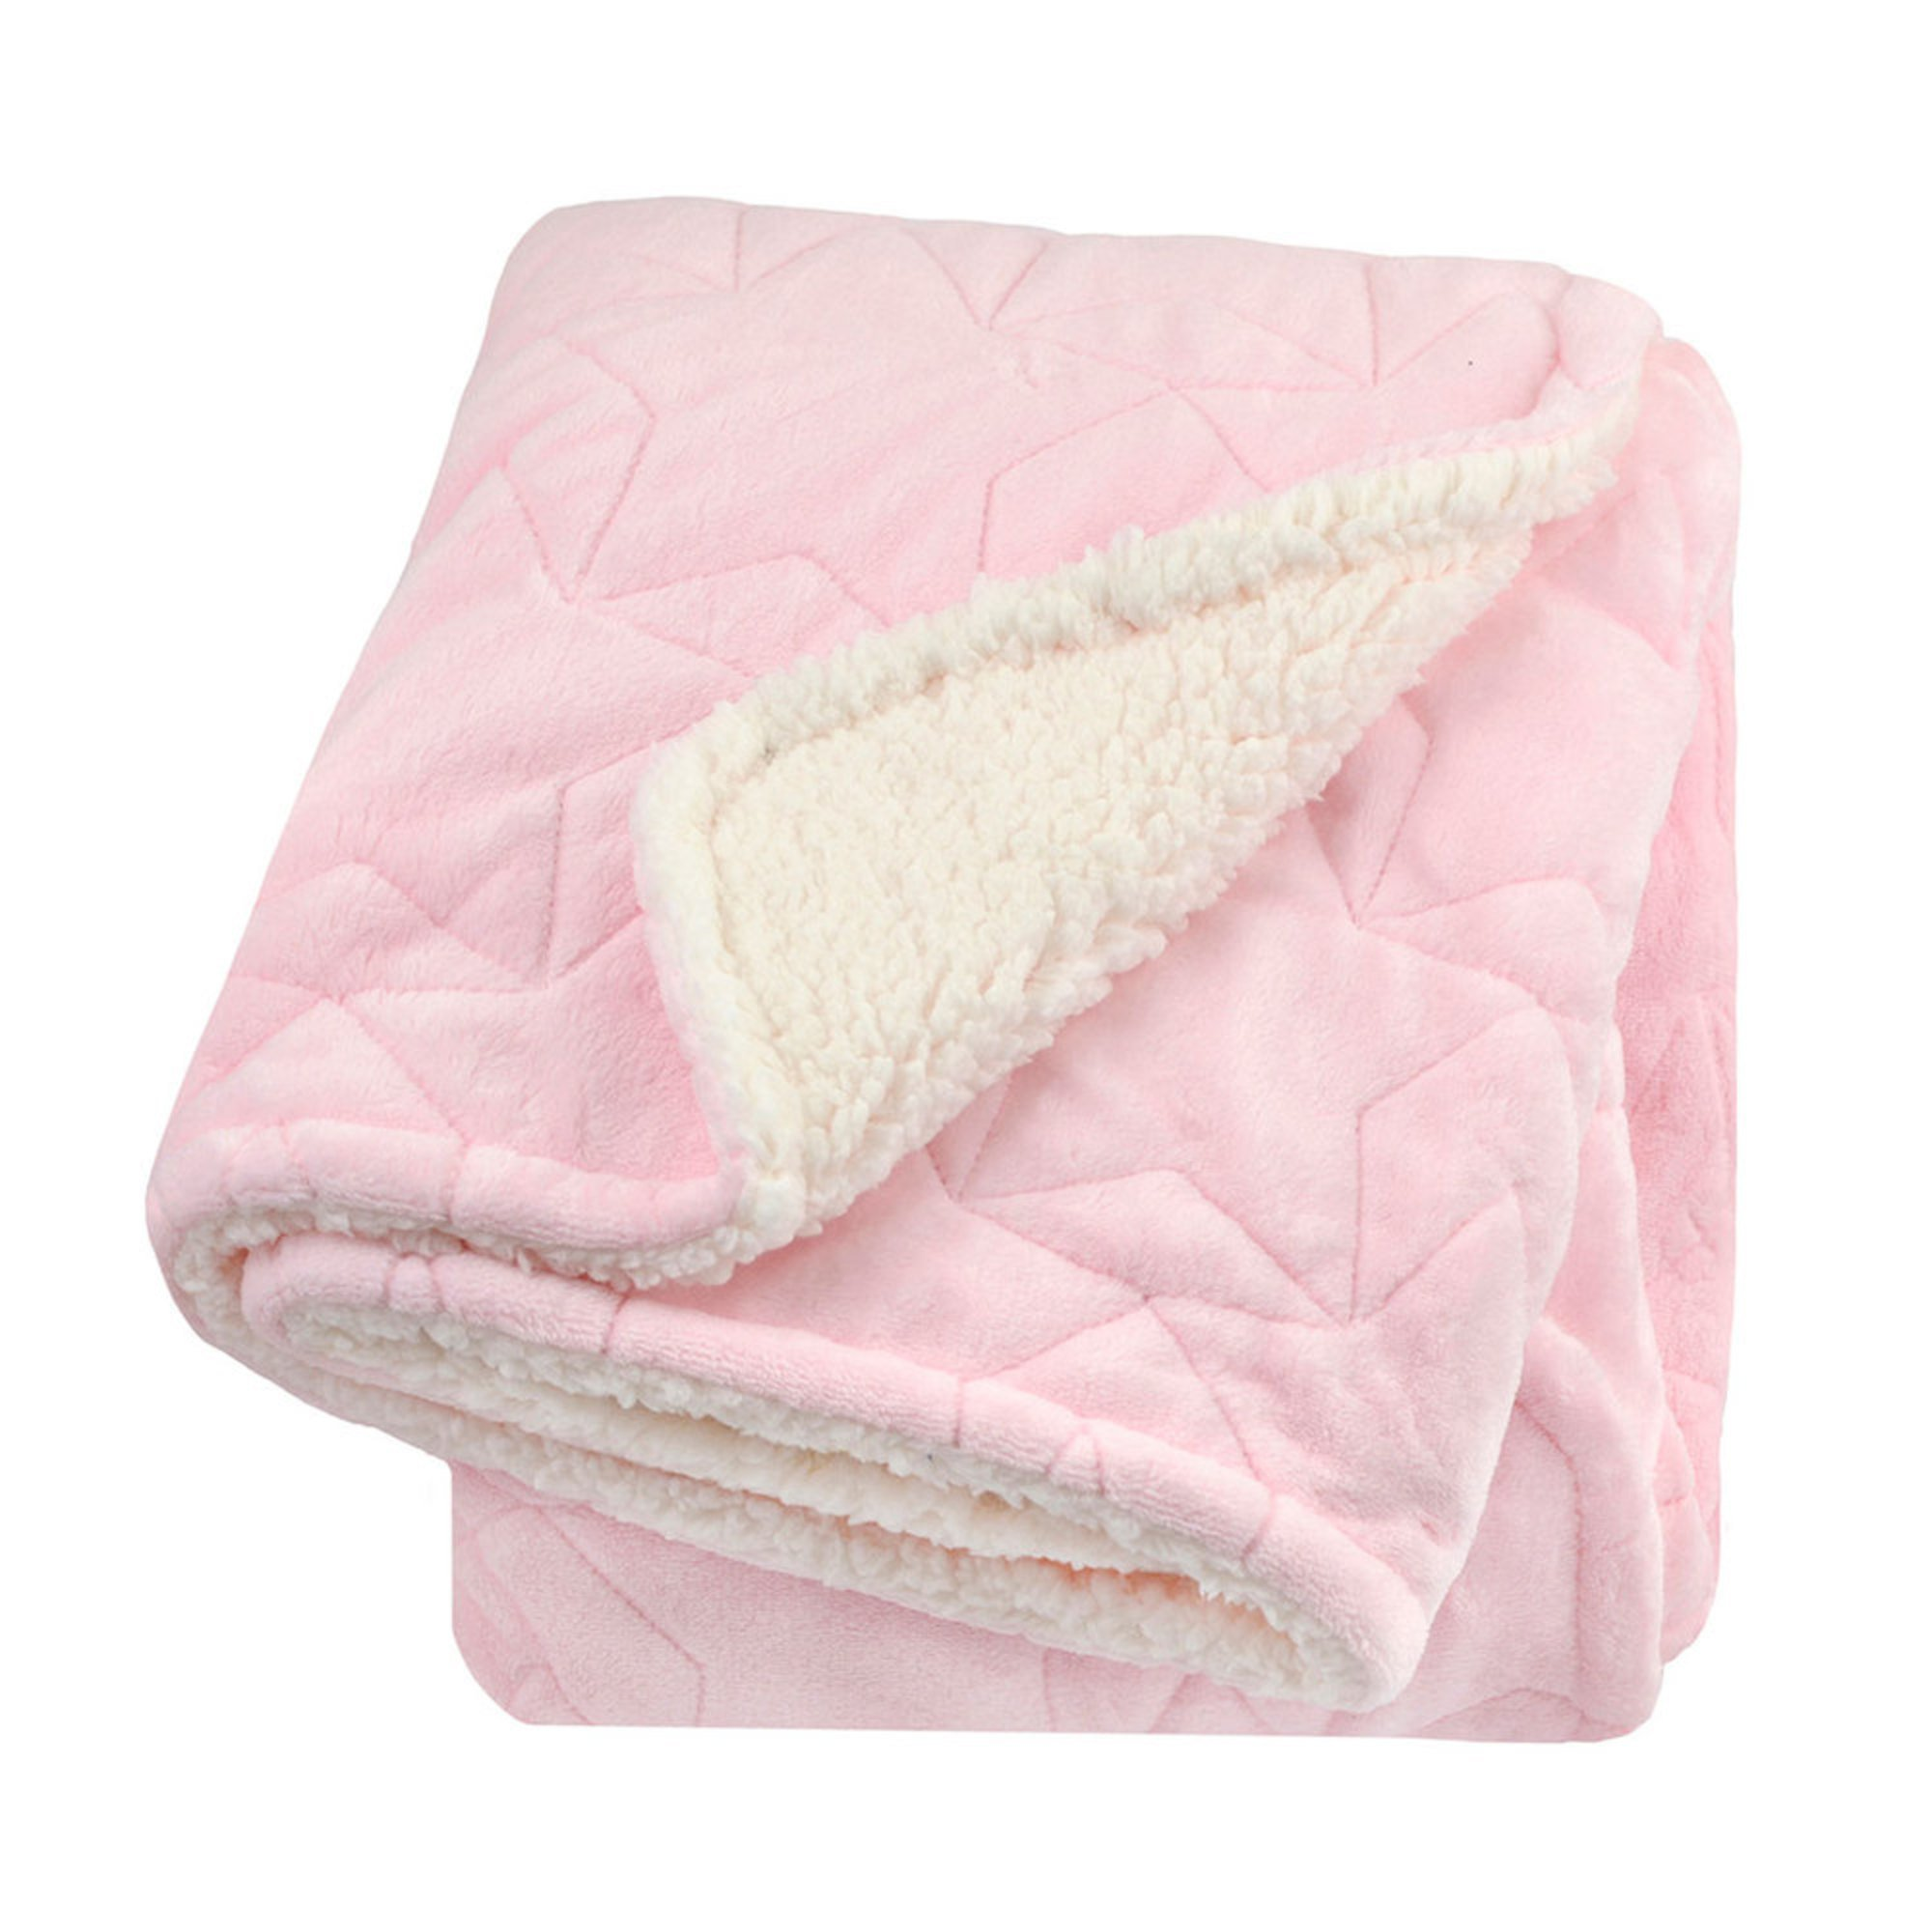 7e4baf2152 Just Born 2 Ply Star Stitched Blanket